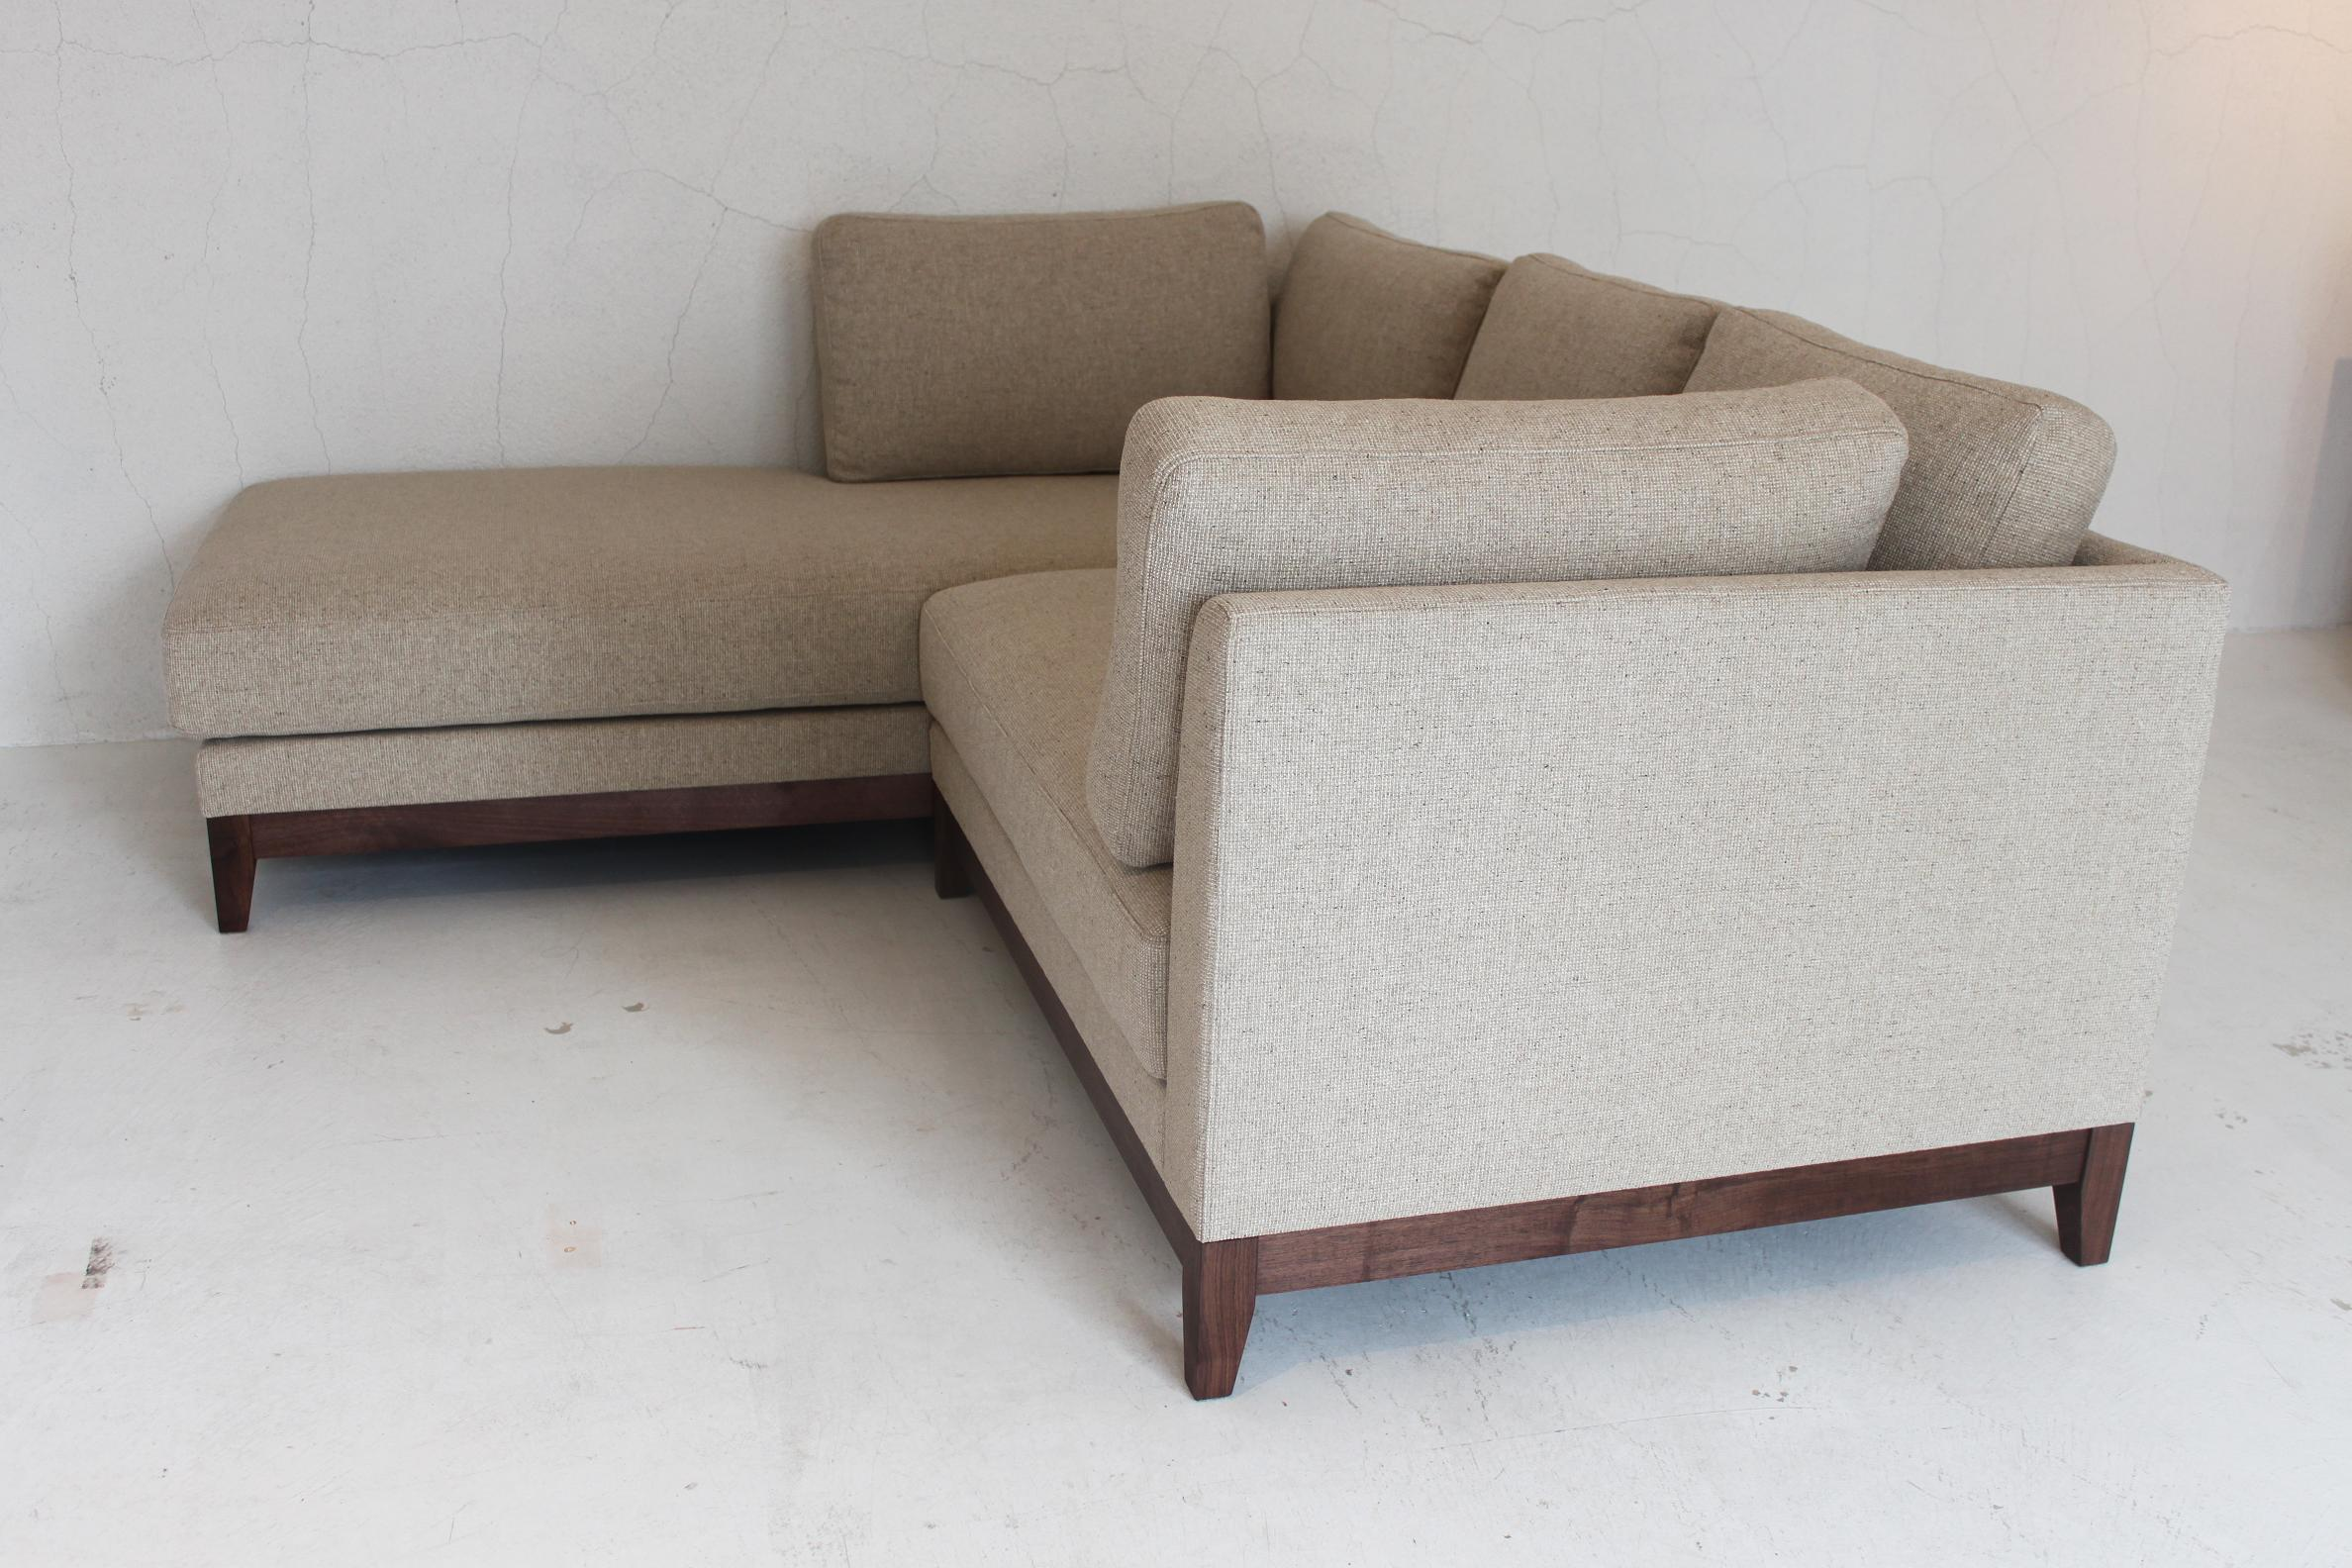 IW COUCH SOFA_c0146581_1785488.jpg